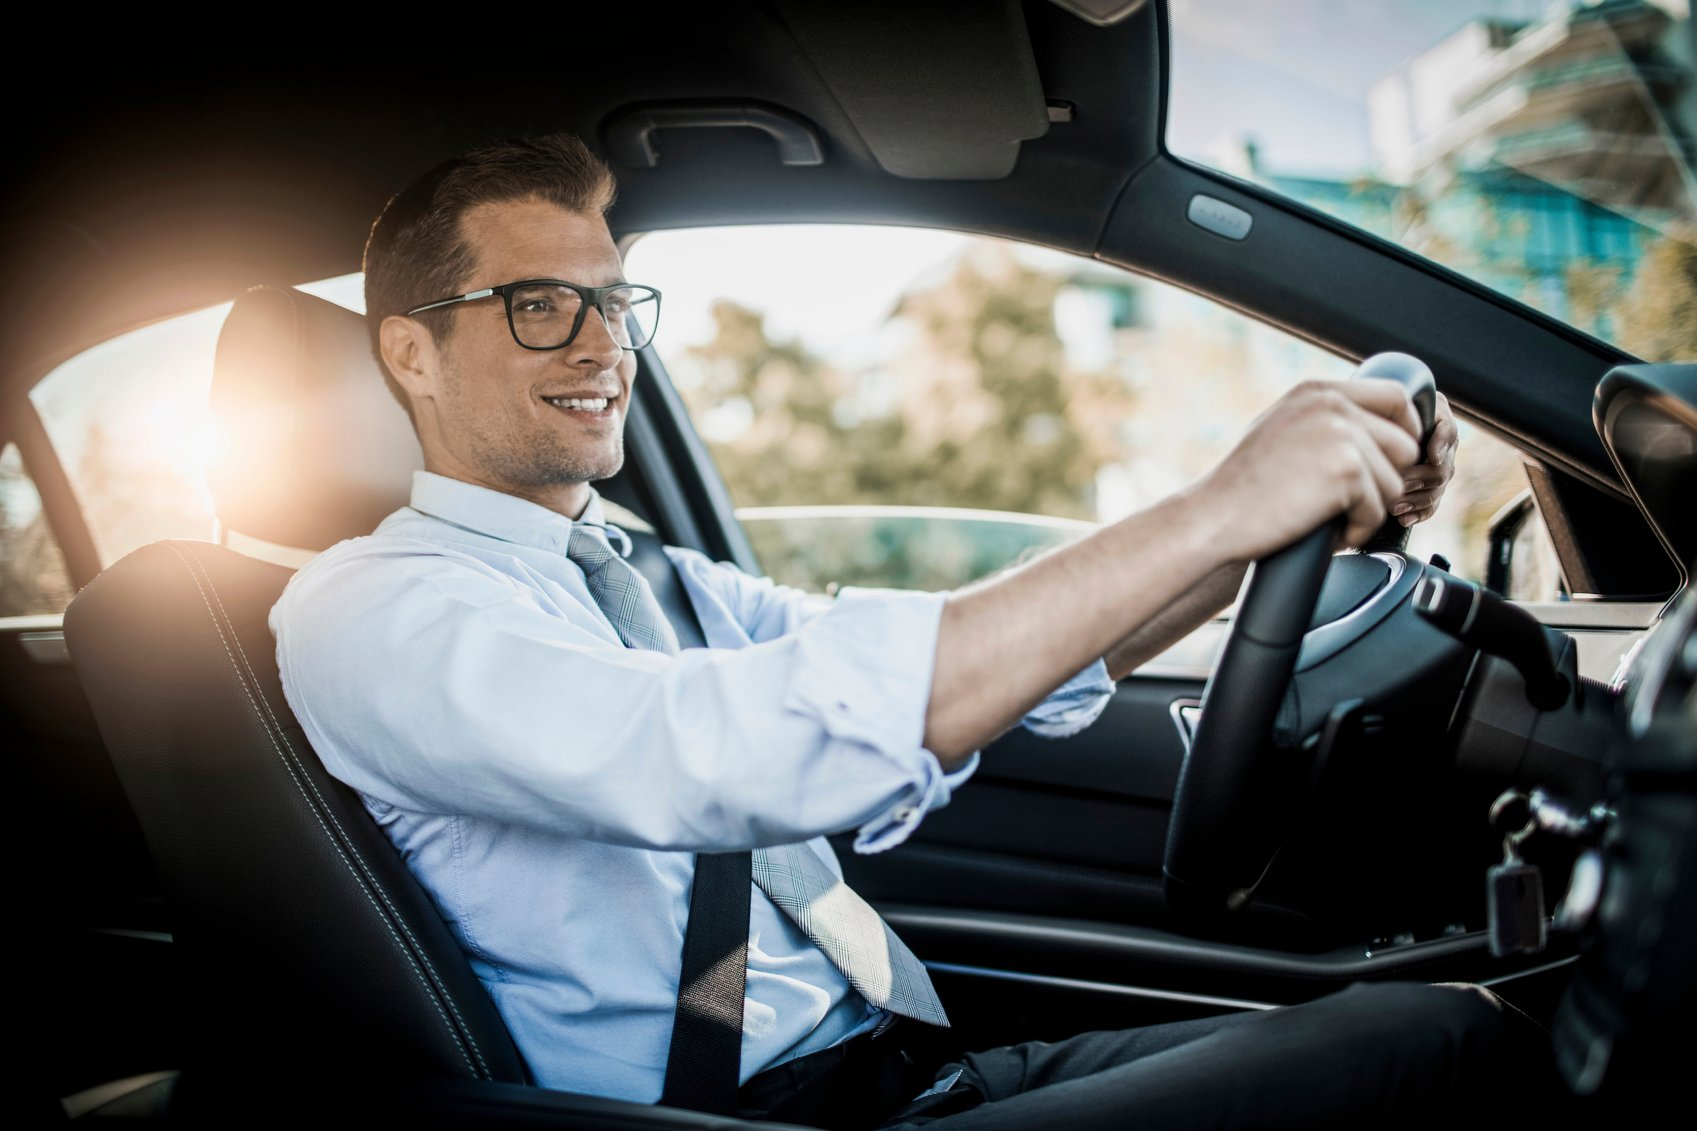 Car Insurance For Drivers With An International Driving. Car Accident Lawyer Columbus Ohio. Affordable Web Hosting Services. Hartford Dental Associates Atlanta Junk Cars. Shrinking Thyroid Nodules Advertise Your App. High Speed Internet Satellite. Top Cinematography Schools Windows Server Vps. How To File Amended Tax Return. Best Deals On Credit Cards Rewards